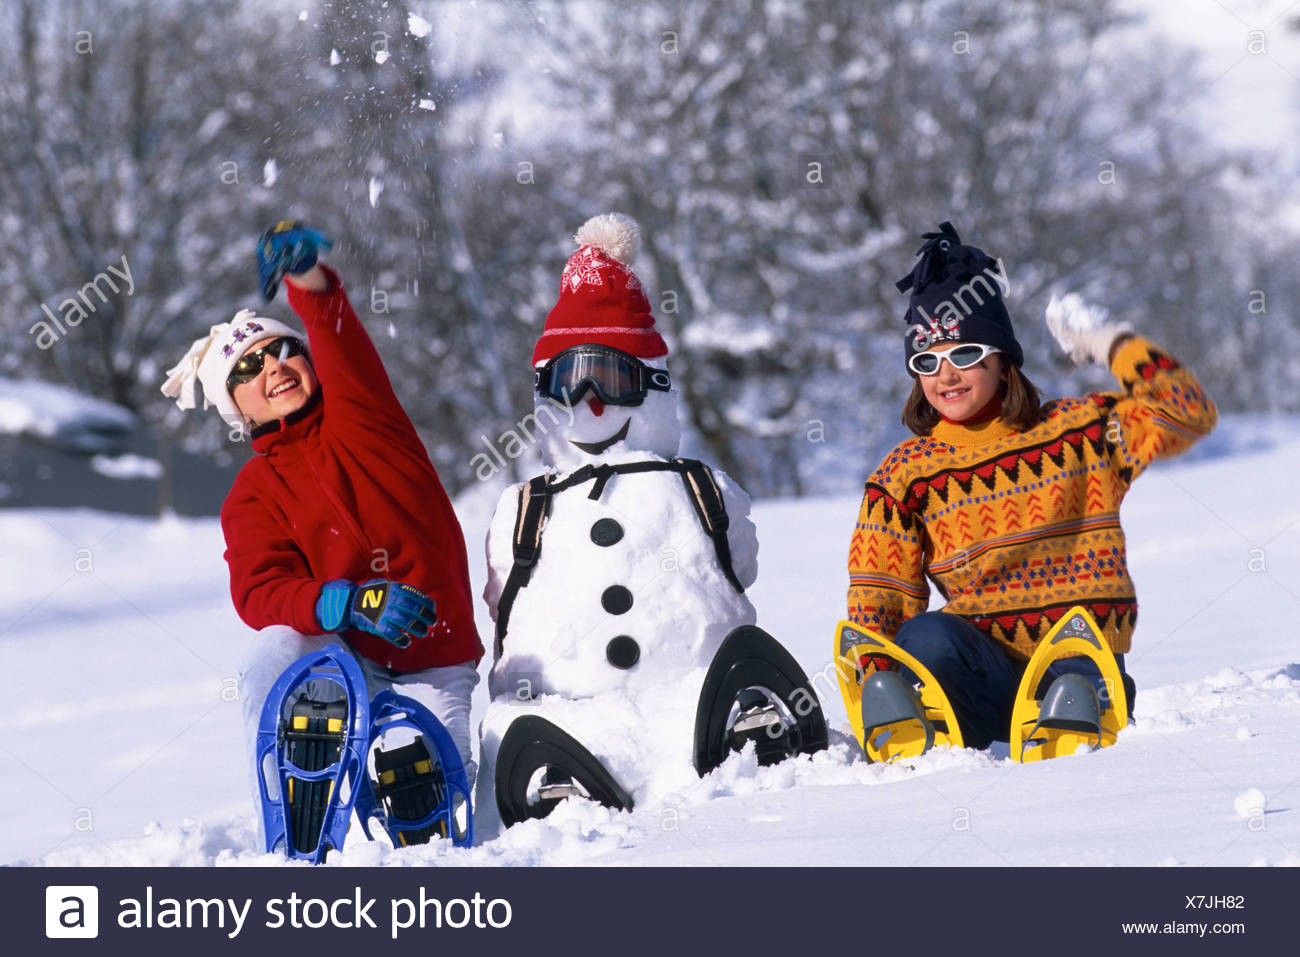 two girls wearing snowshoes, sitting beside a snowman, throwing snow balls. Stock Photo